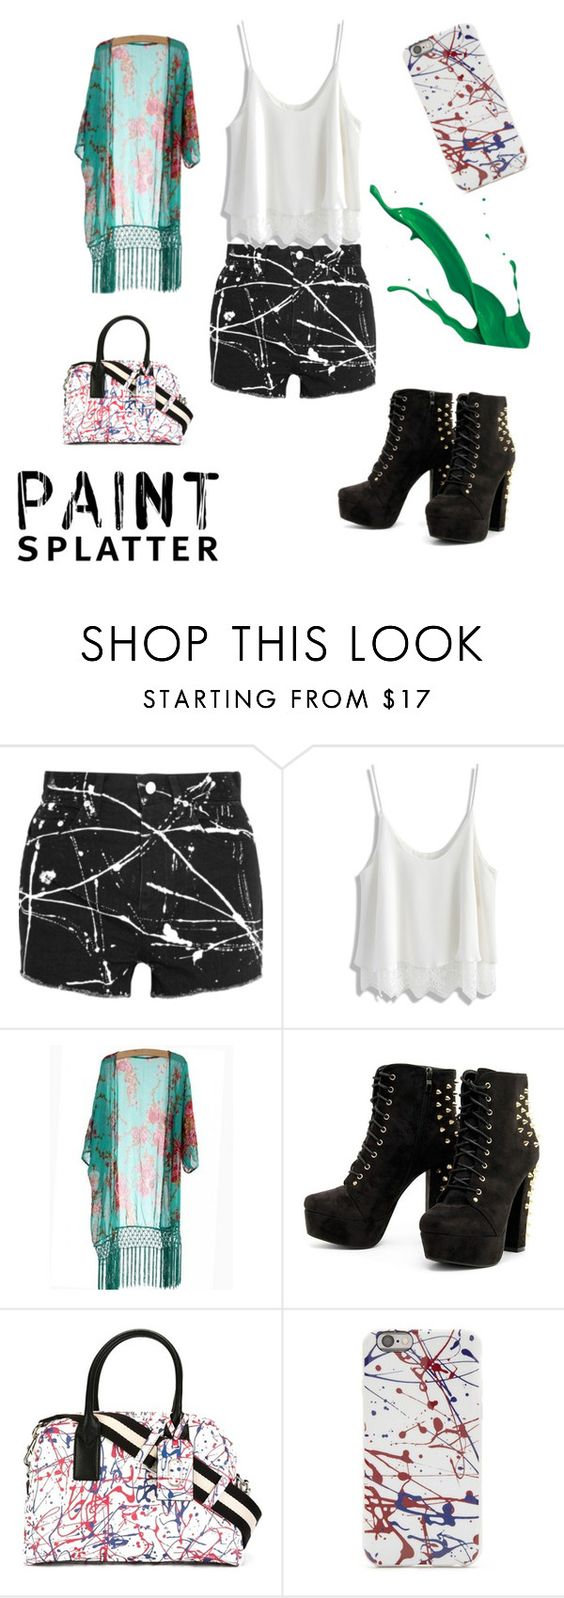 """""""Untitled #26"""" by shaquasiamoore ❤ liked on Polyvore featuring Yves Saint Laurent, Chicwish, Marc Jacobs and paintsplatter"""